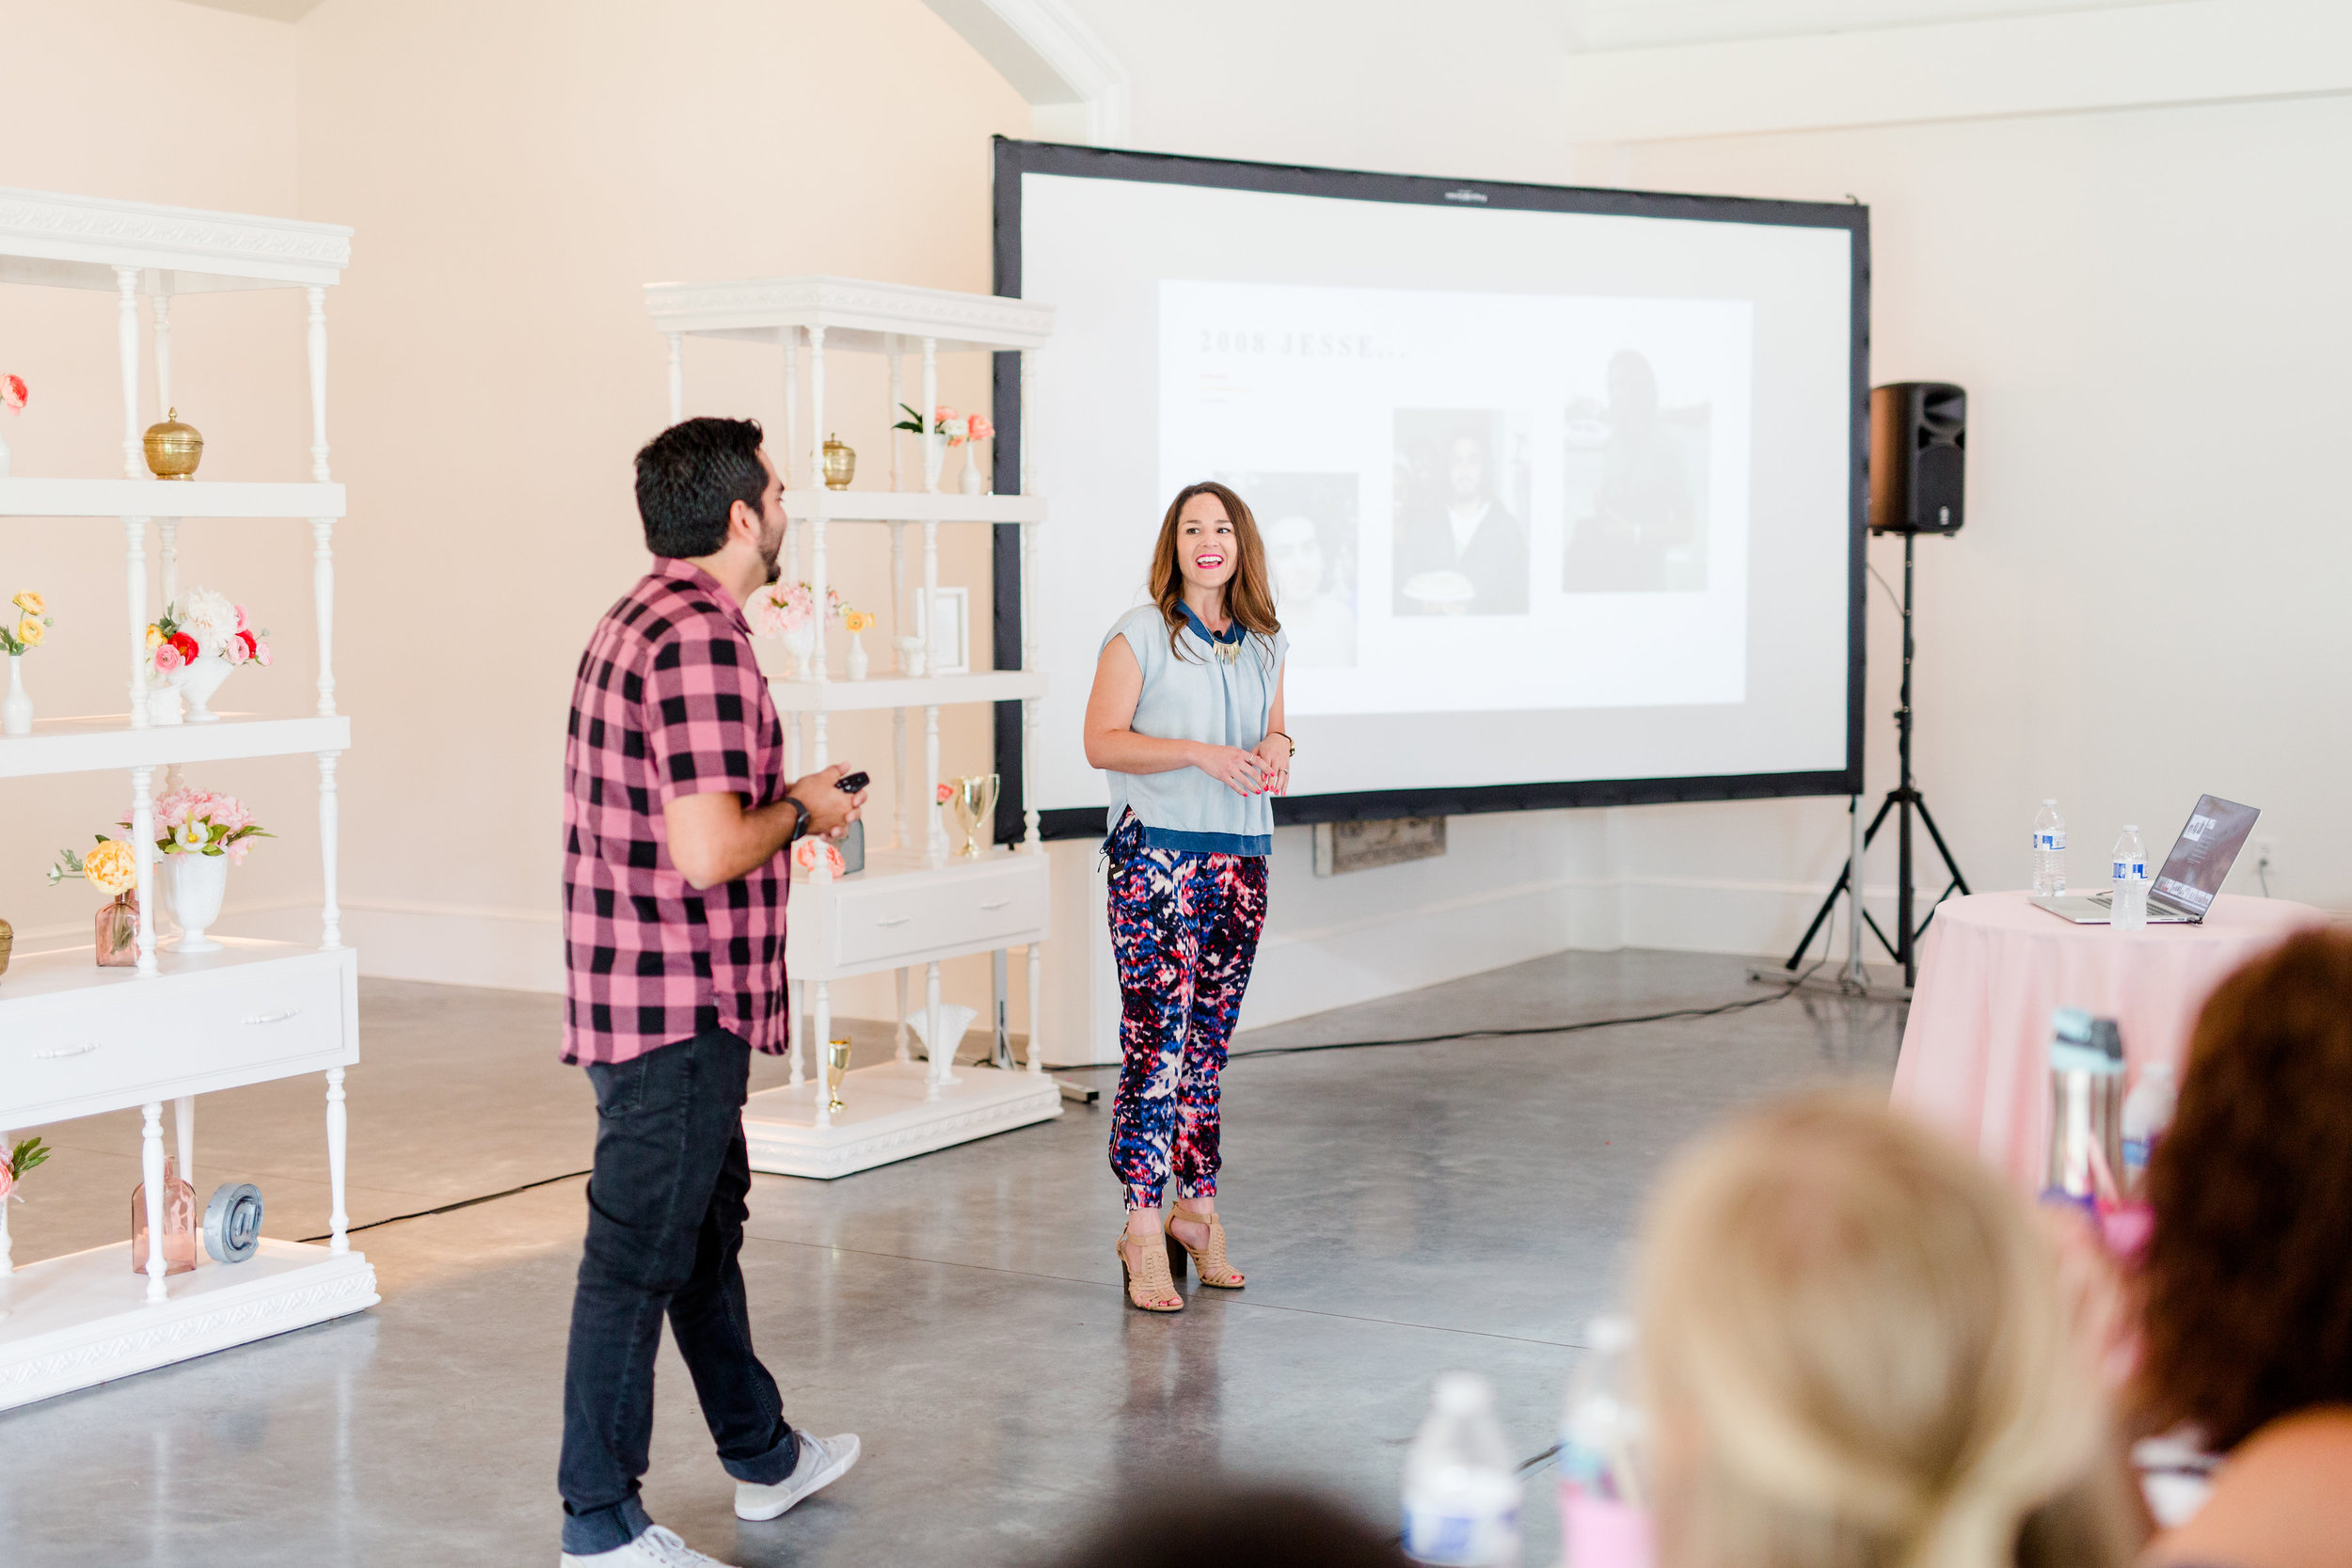 Merrimon-Wynne-Creative-At-Heart-Conference-Raleigh-North-Carolina-Holly-Felts-Photography-28.jpg